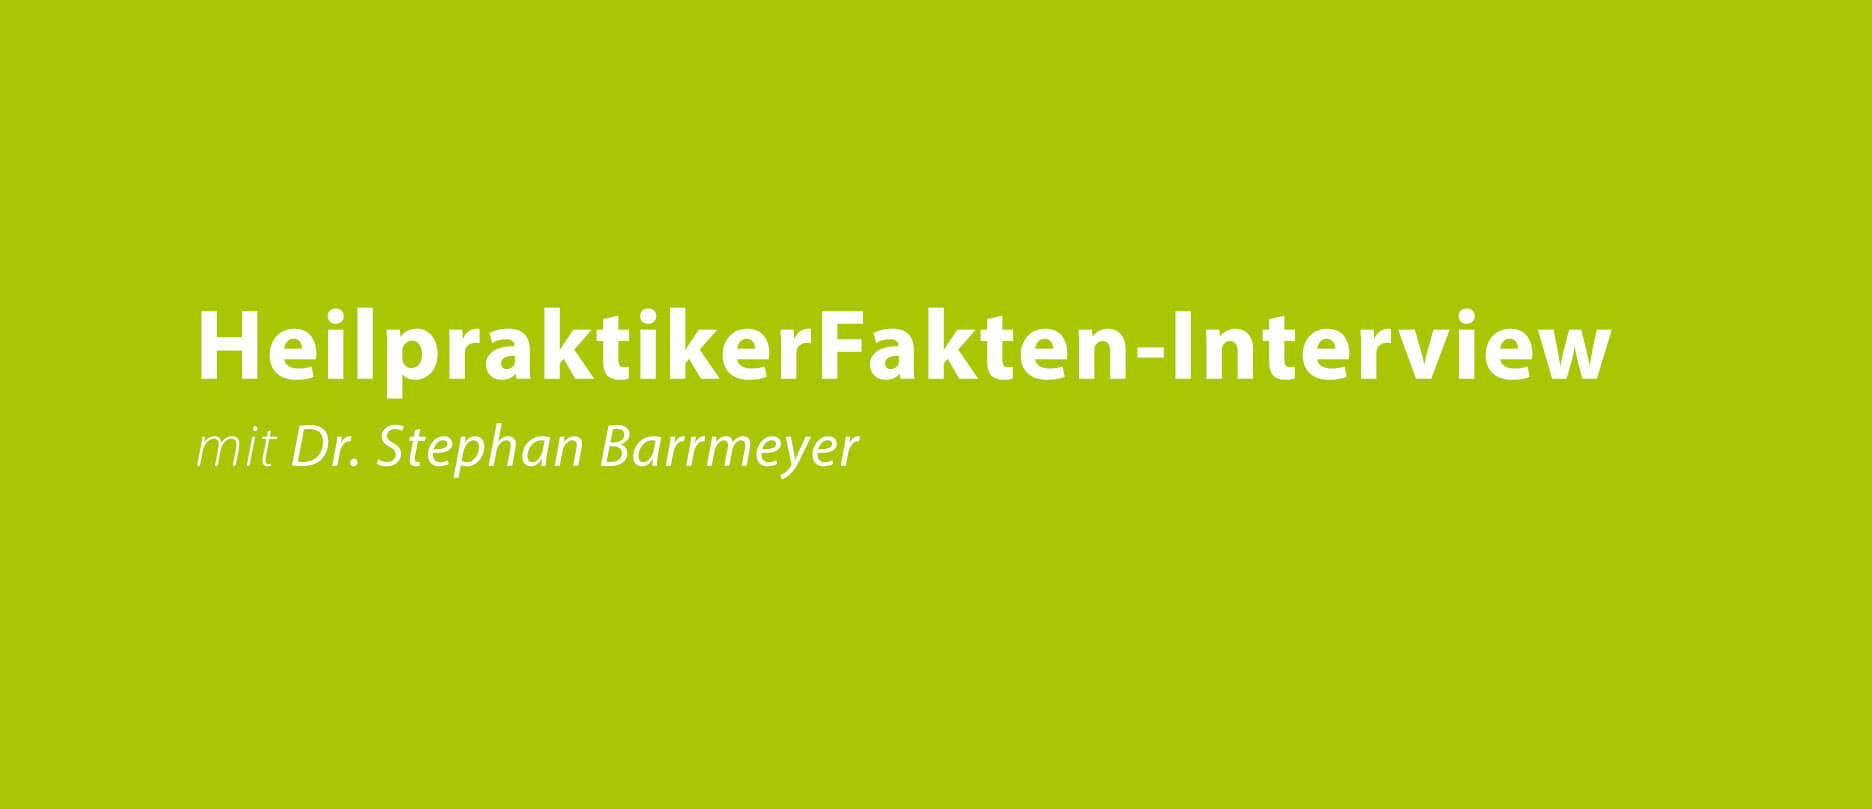 Interview mit Dr. Stephan Barrmeyer